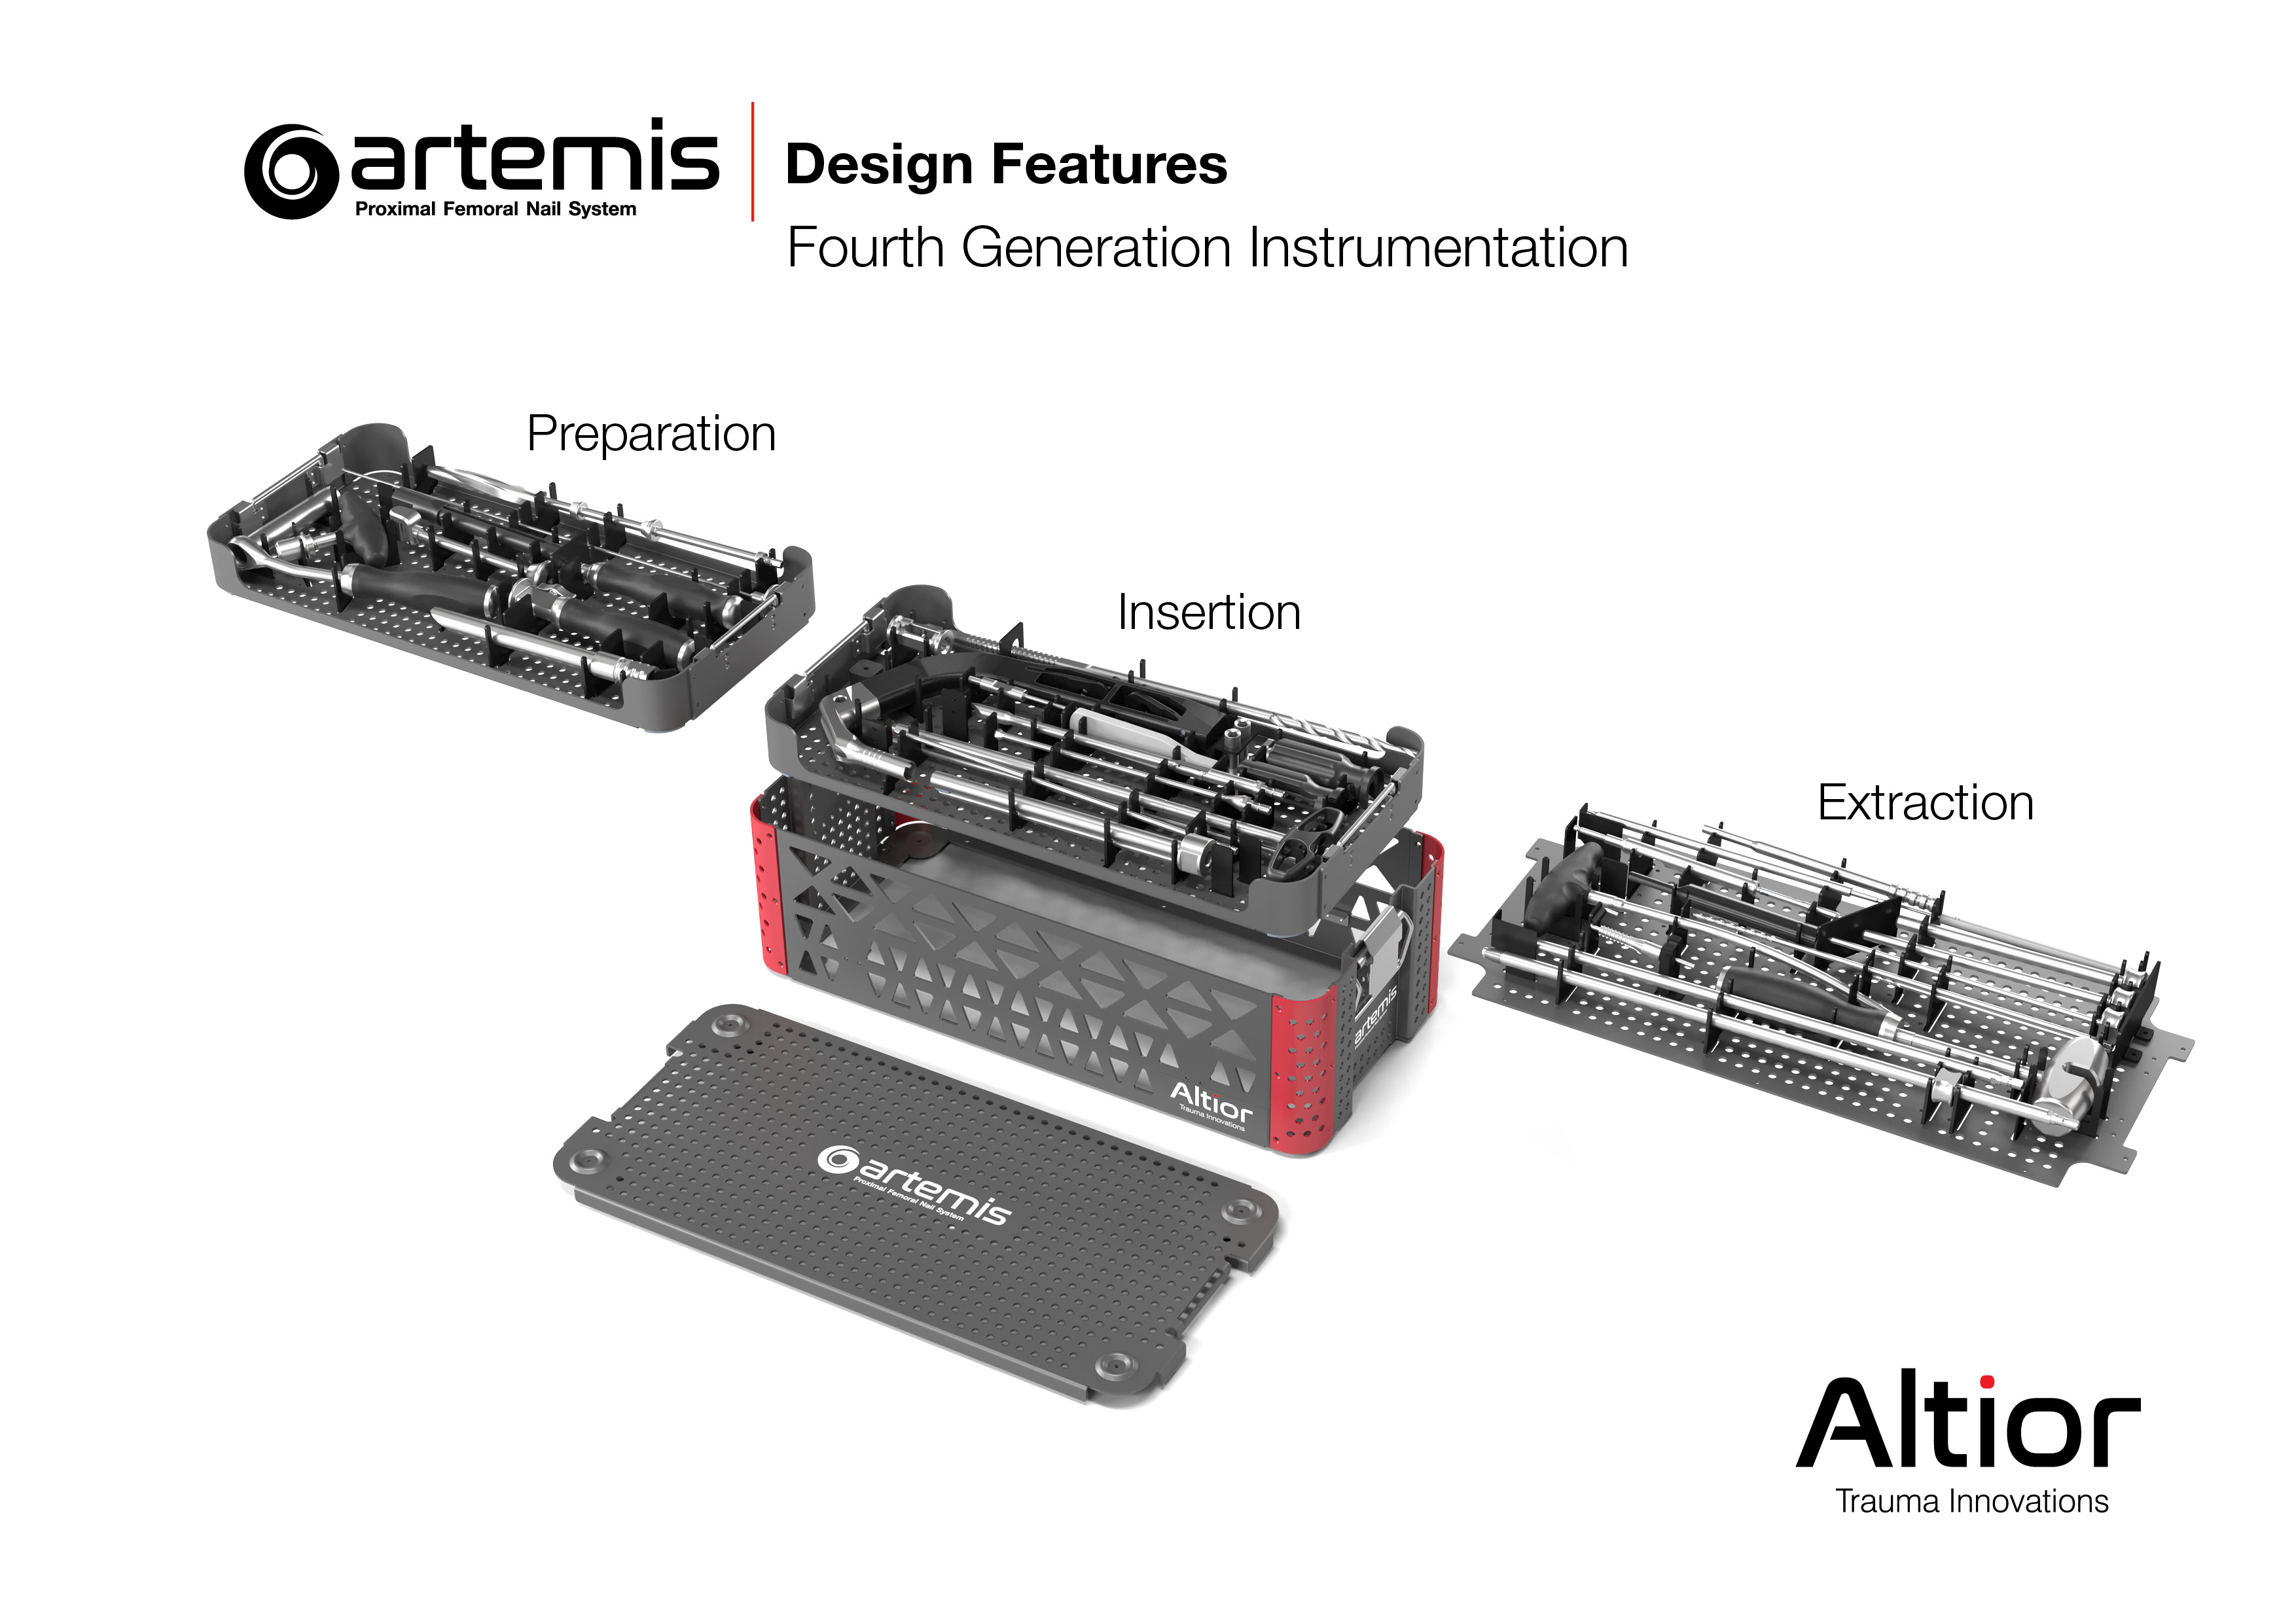 The Artemis System provides a fourth-generation nail with streamlined surgical instruments that allow for simplified implantation and superior patient benefits.  Among other unique design features, the instrument set includes a novel anti-rotation pin tha